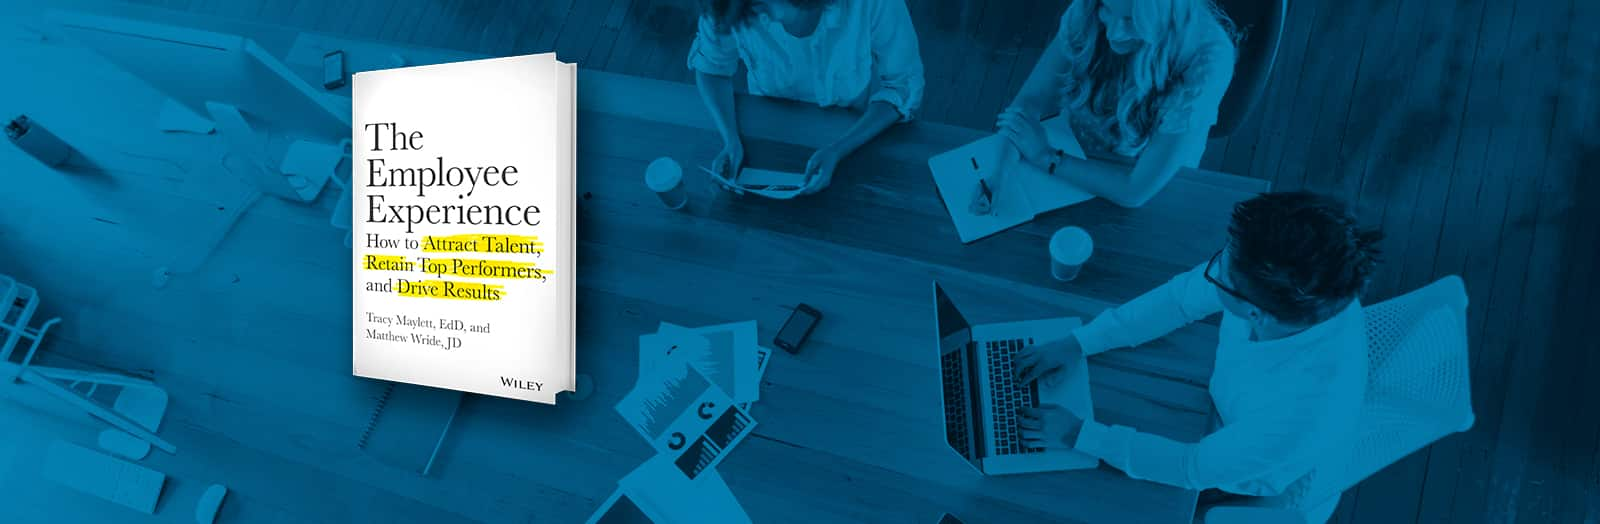 The-Employee-Experience-Book-banner